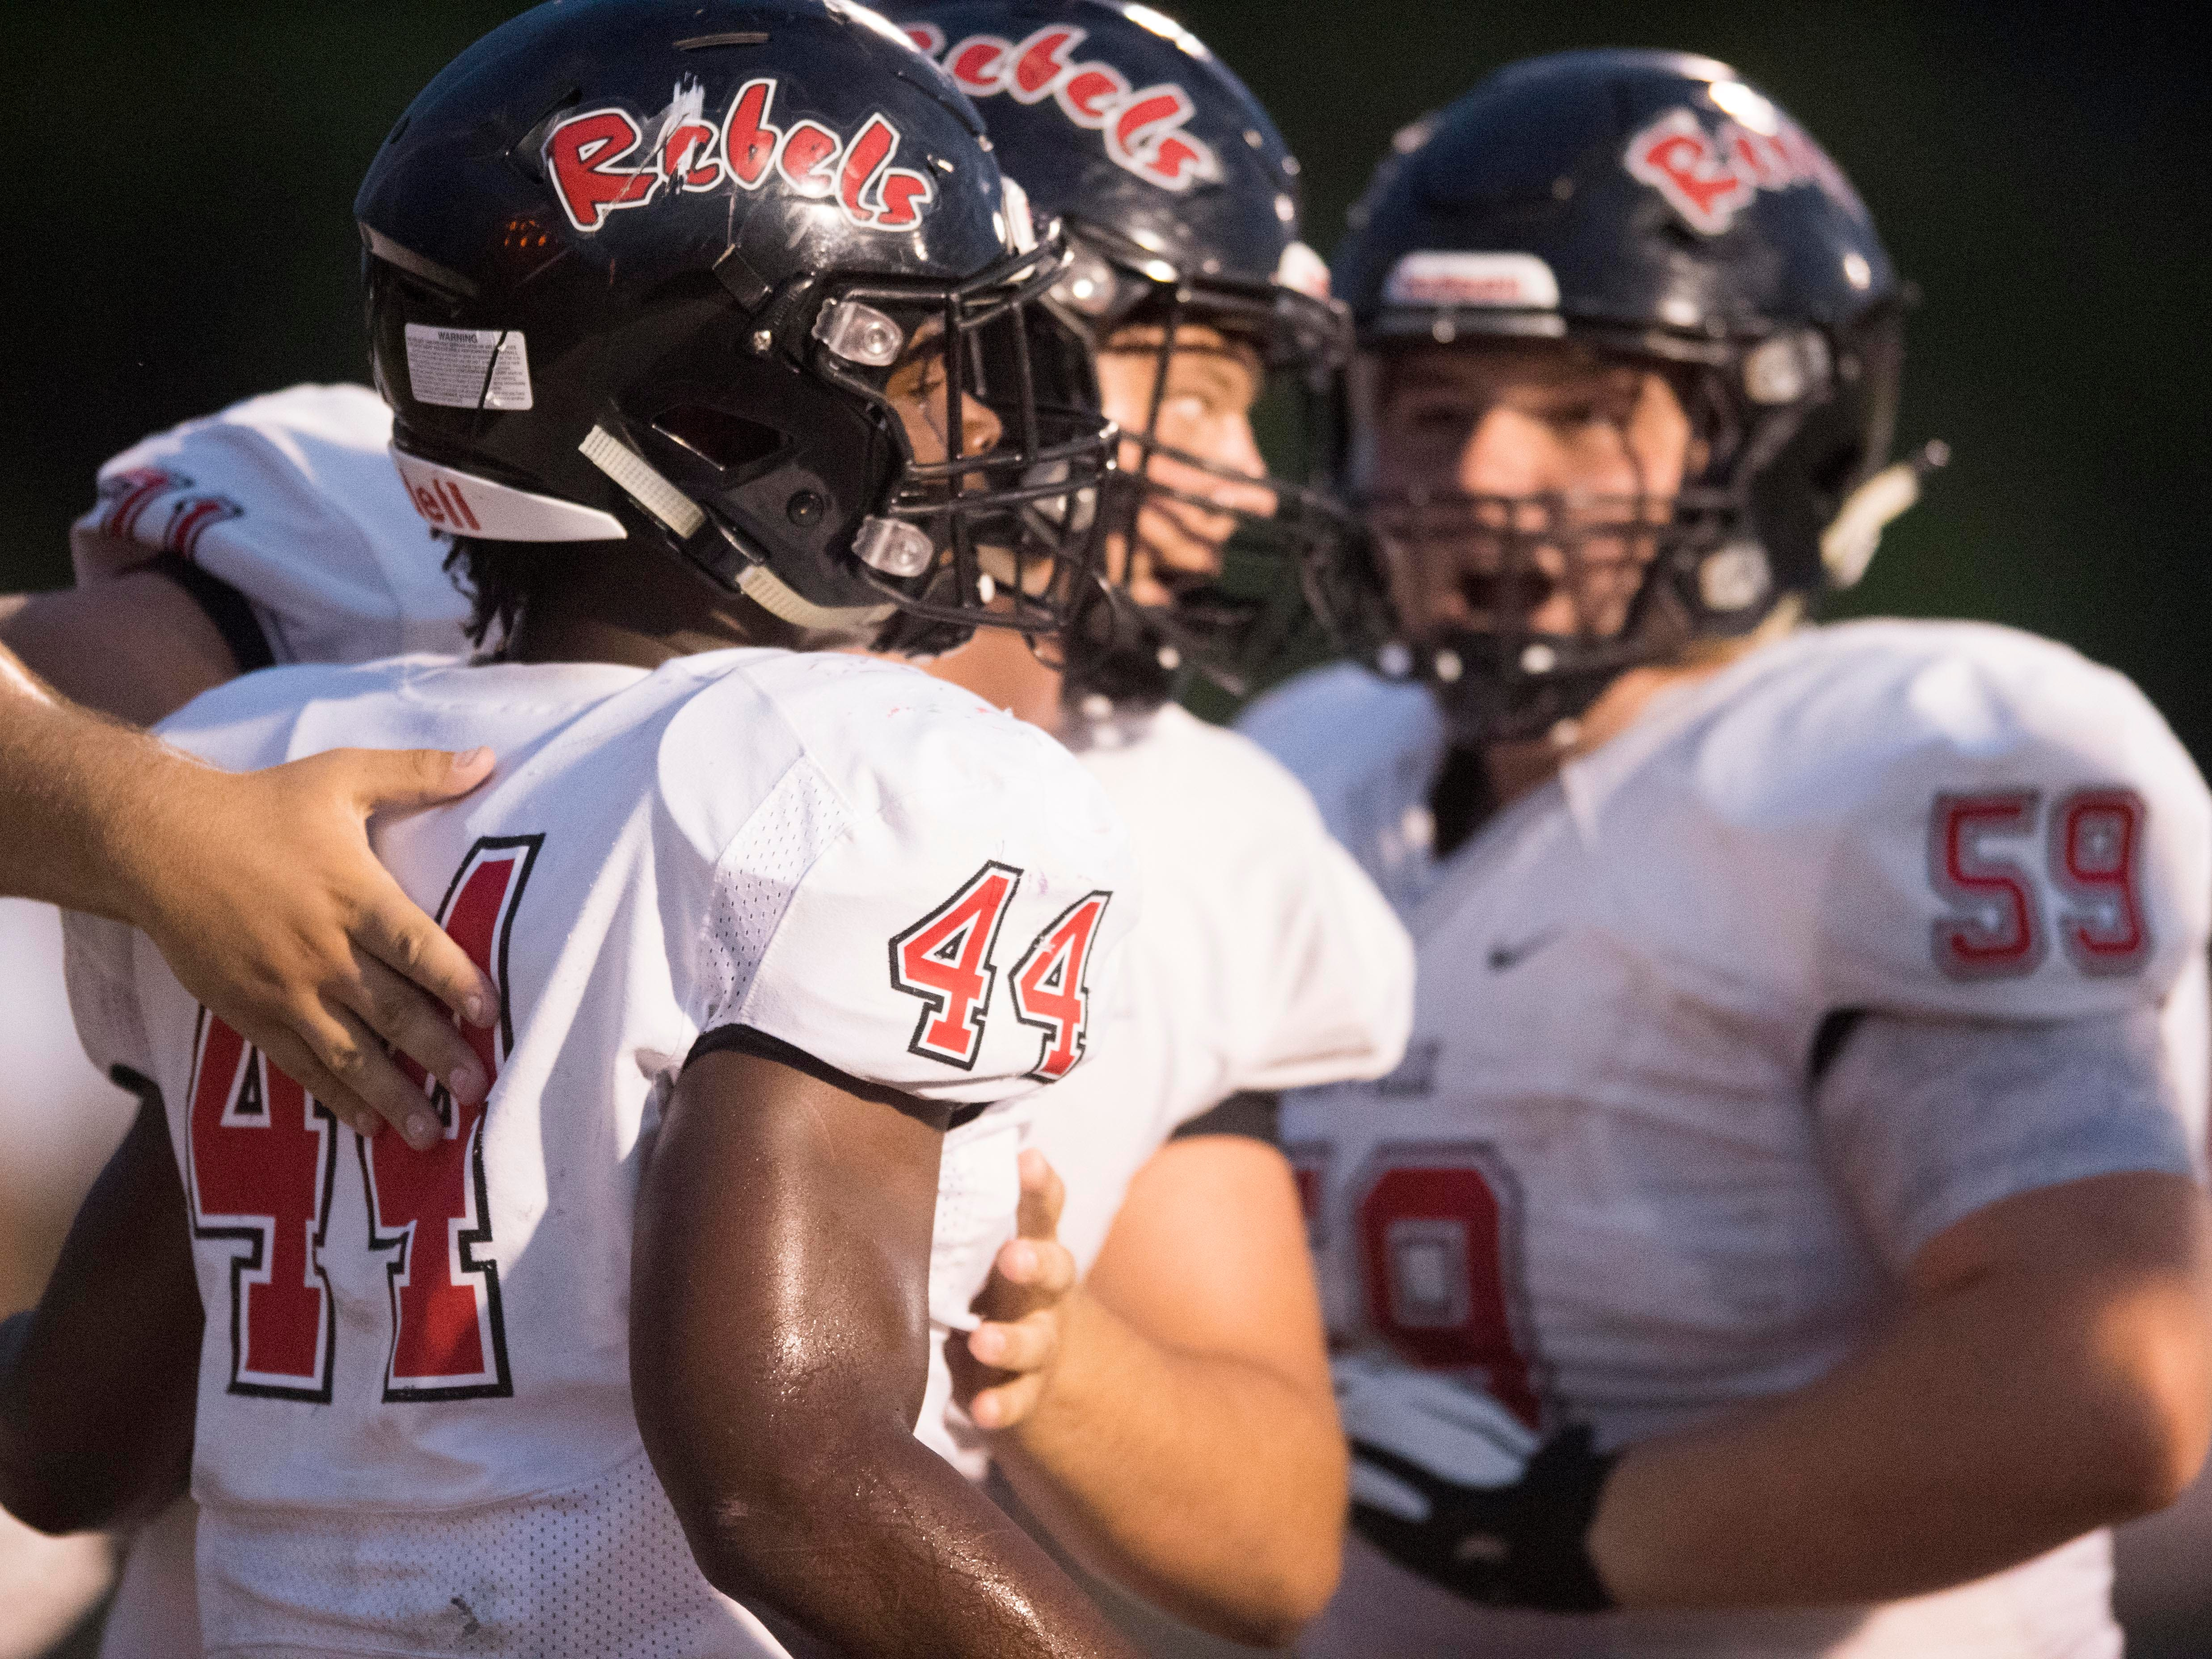 Teammates congratulate Maryville's Tee Hodge (44) after Hodge scored a touchdown in the football game against Fulton on Friday, September 21, 2018.